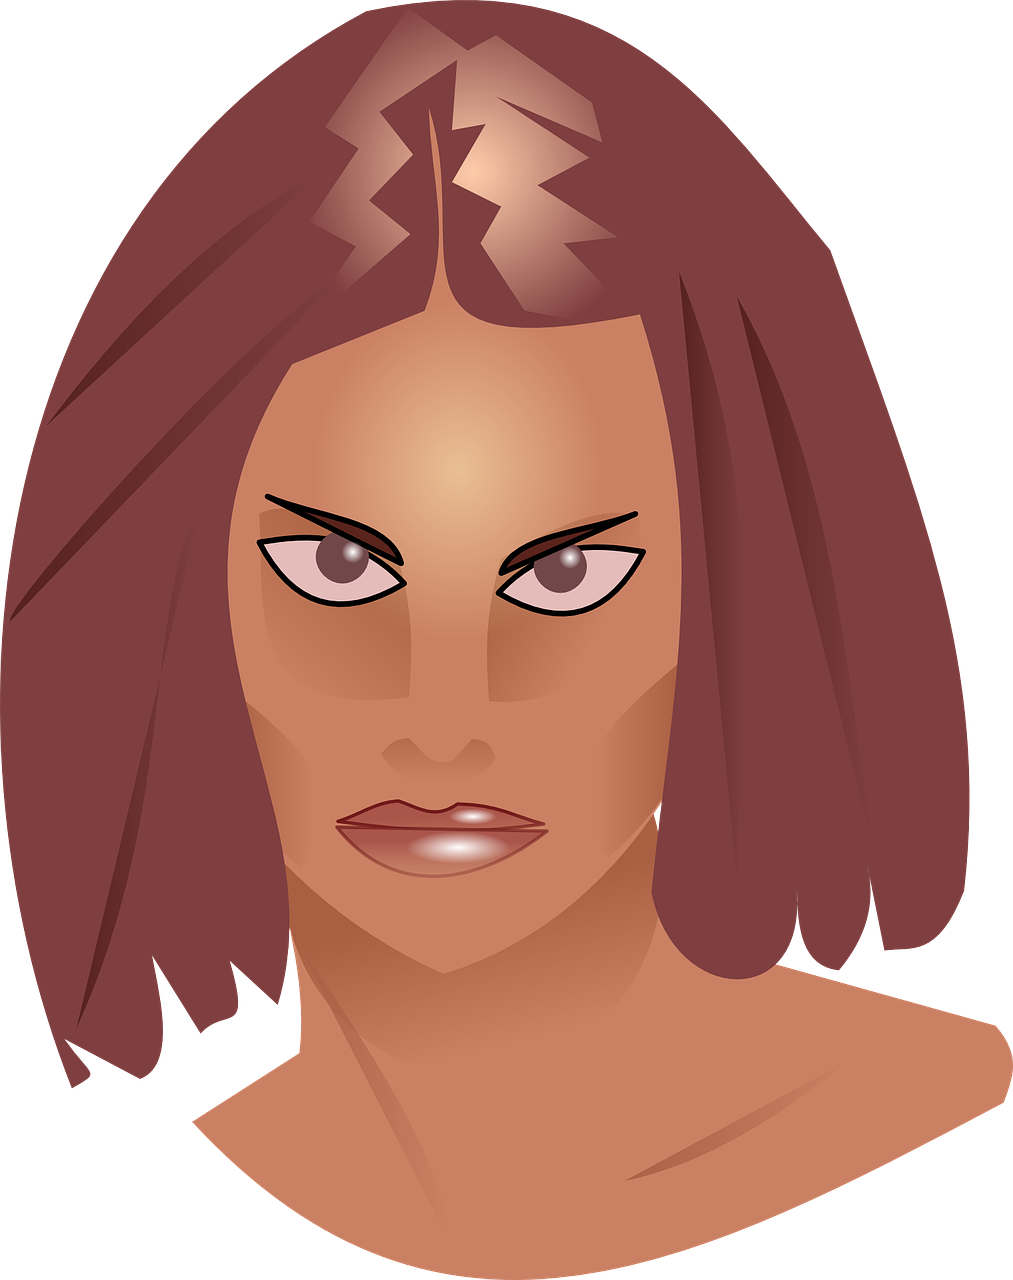 clipart of an angry woman